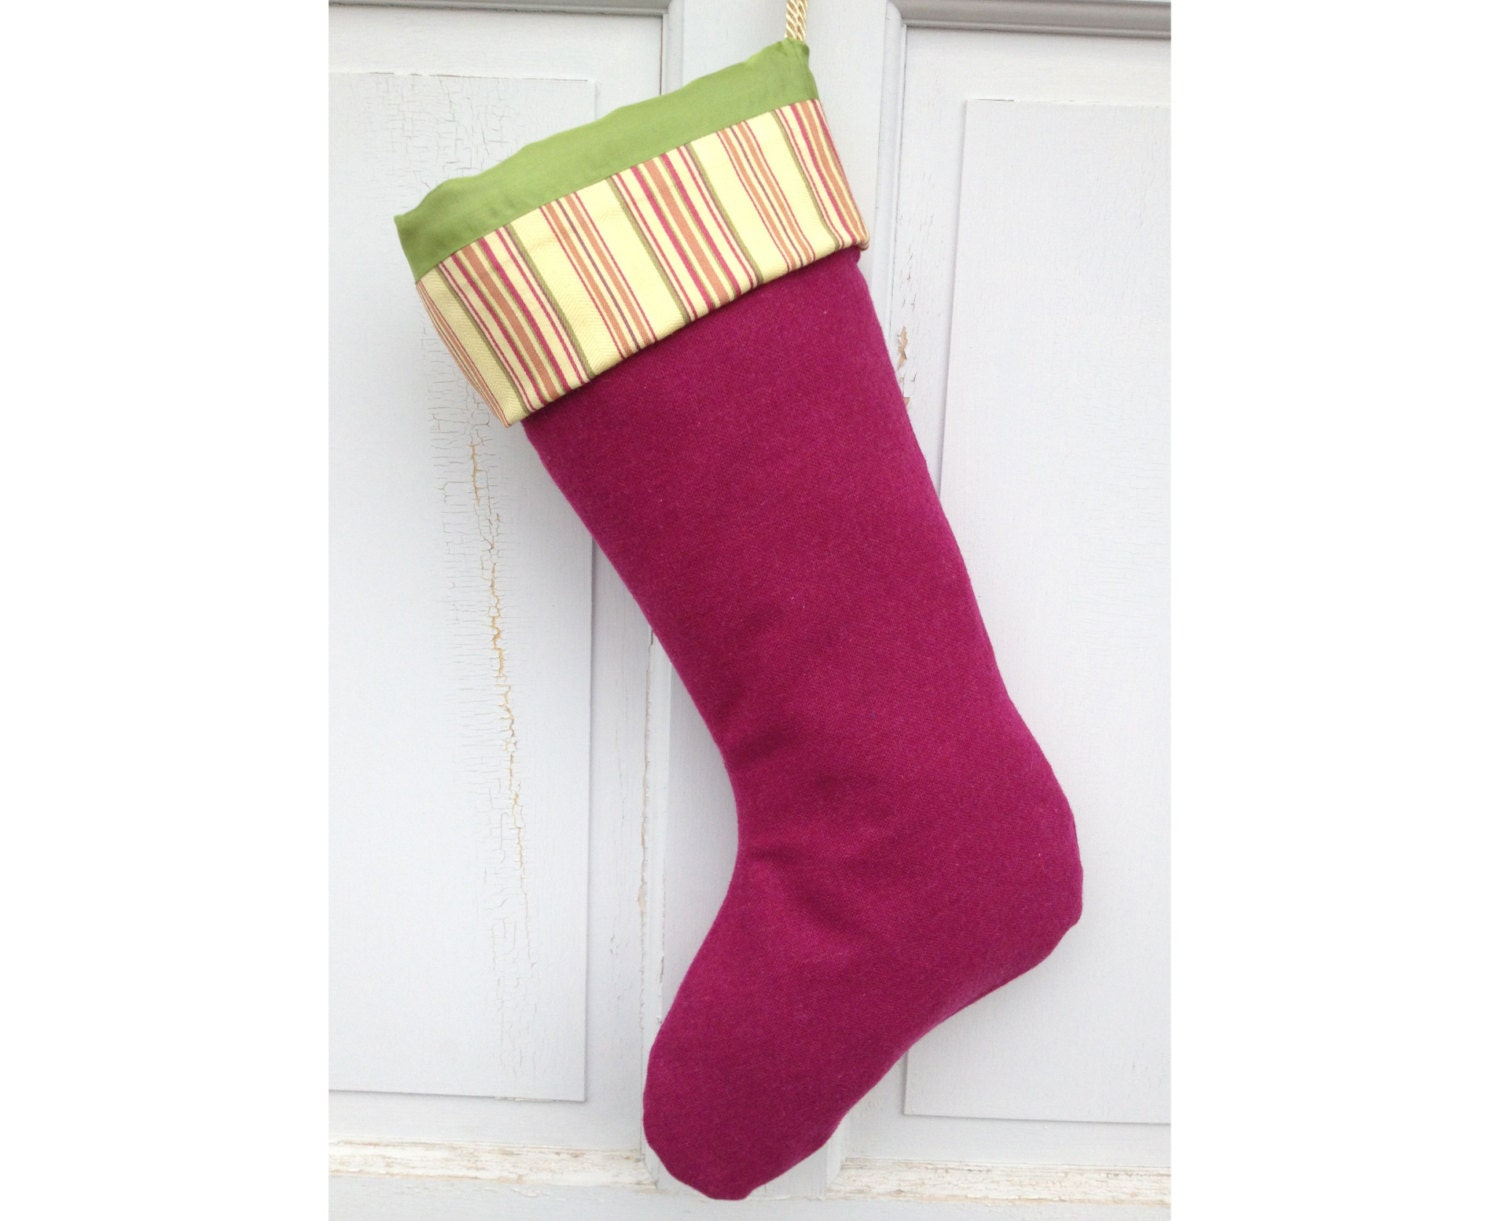 Large Pink Wool Christmas Stocking - Raspberry with Lemon  Modern Heirloom Holiday Decor - spongetta